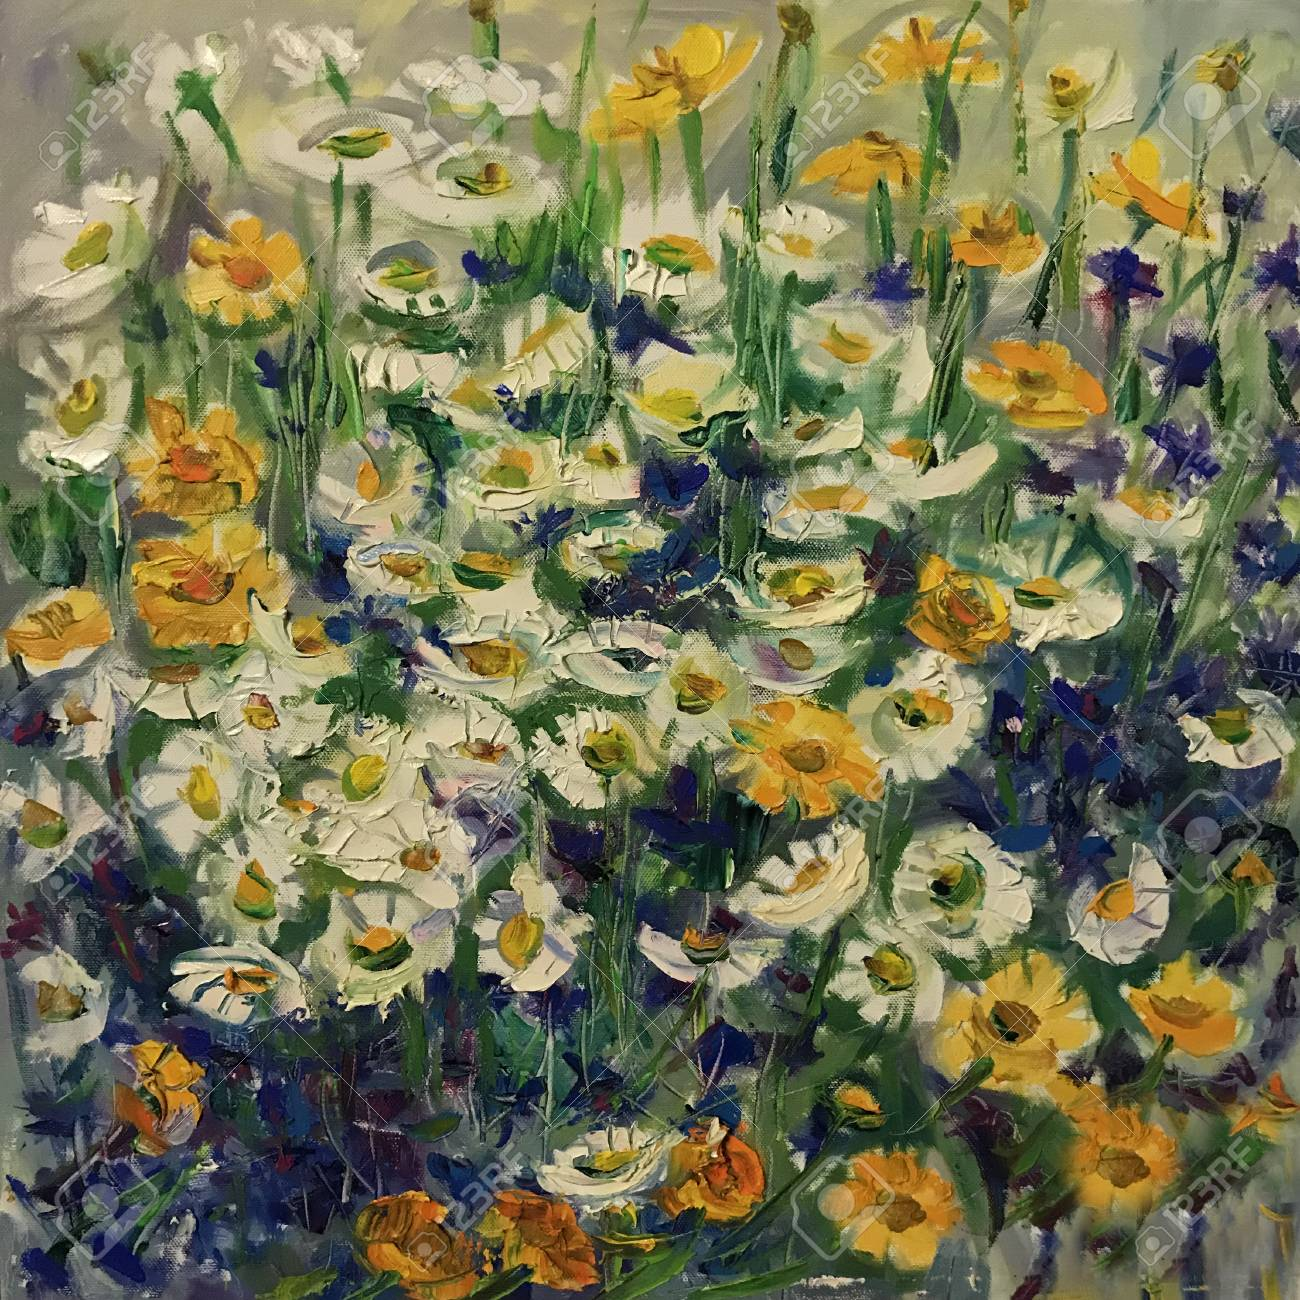 Drawing Of Camomile And Cornflowers Picture Contains An Interesting